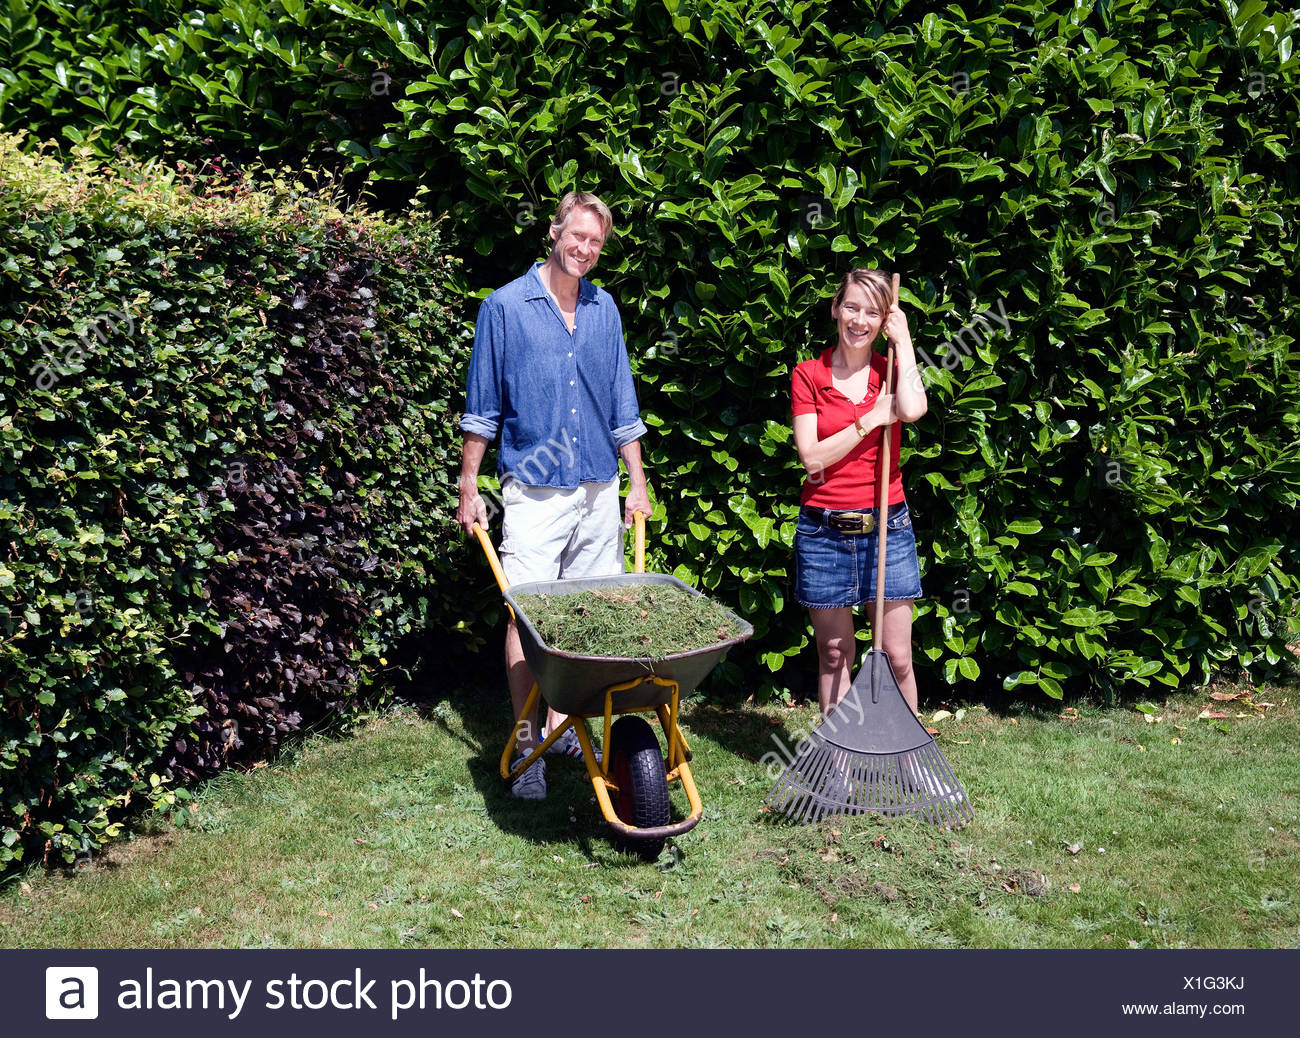 Portrait of couple with garden tools - Stock Image